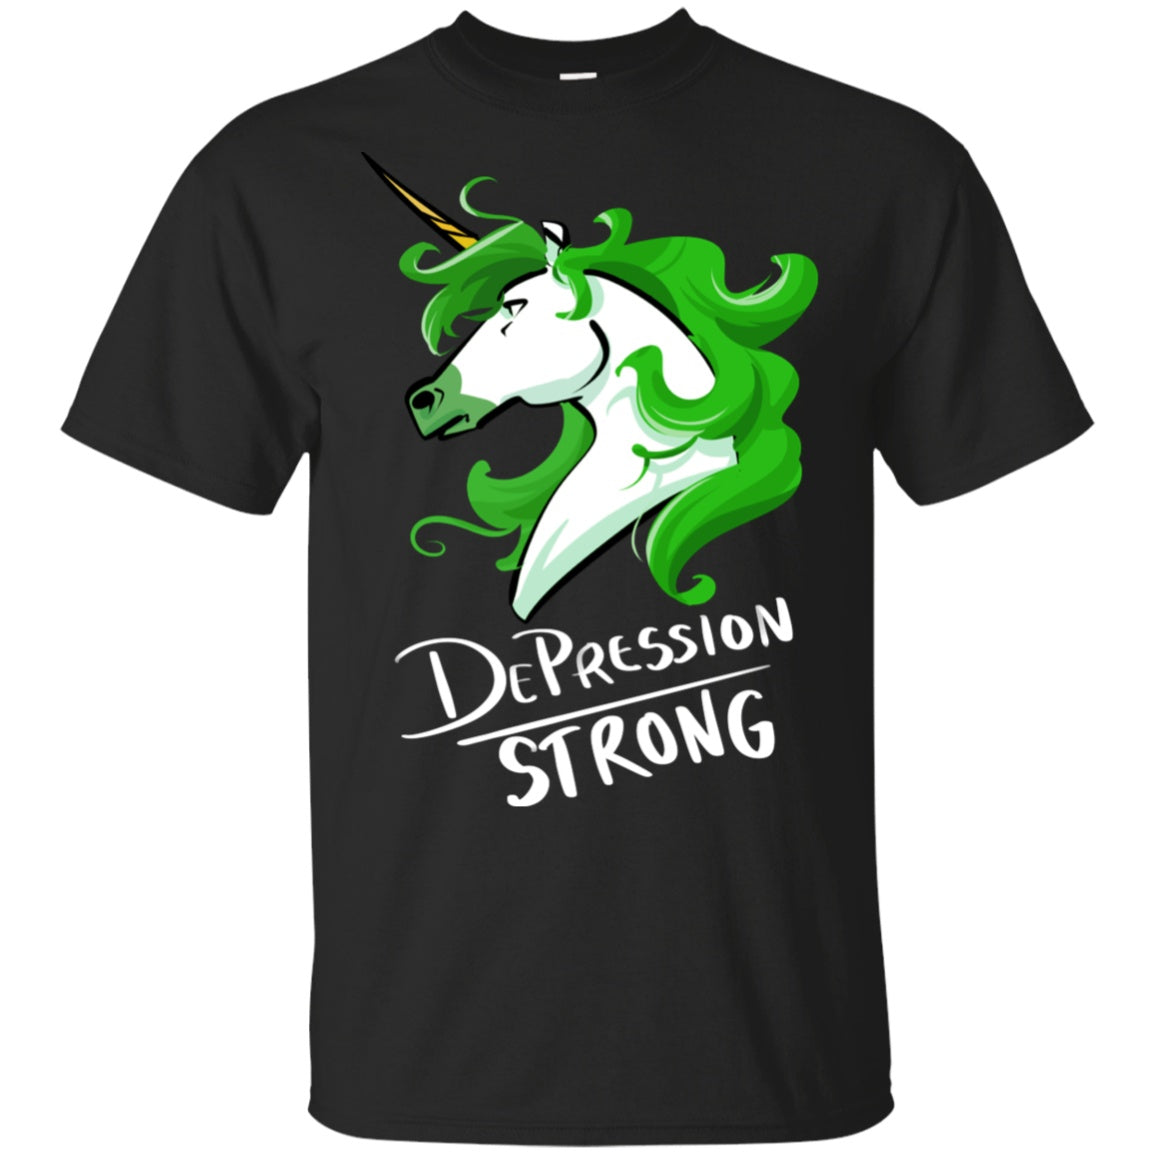 Depression Strong Unicorn Cotton Unisex T-Shirt - The Unchargeables